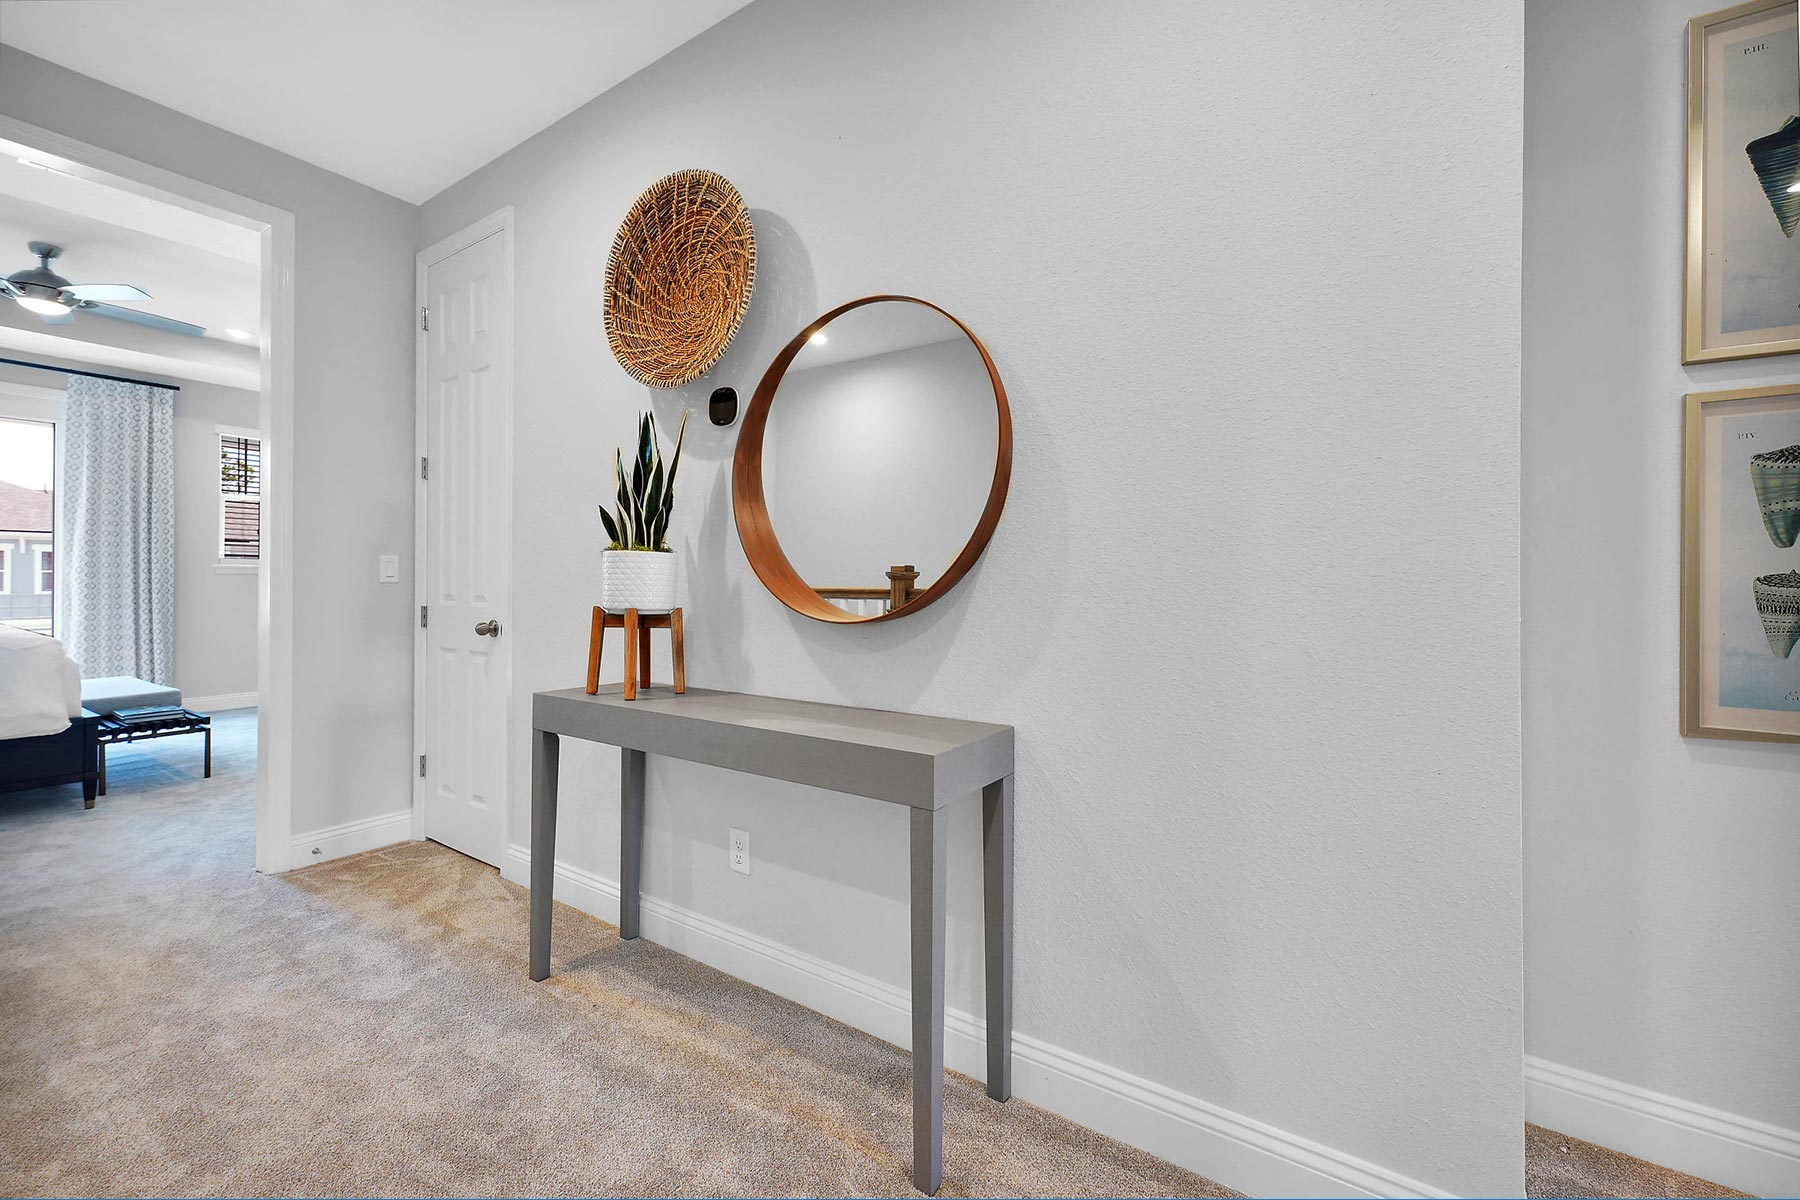 Rialta Plan Hallway at Pablo Cove in Jacksonville Florida by Mattamy Homes